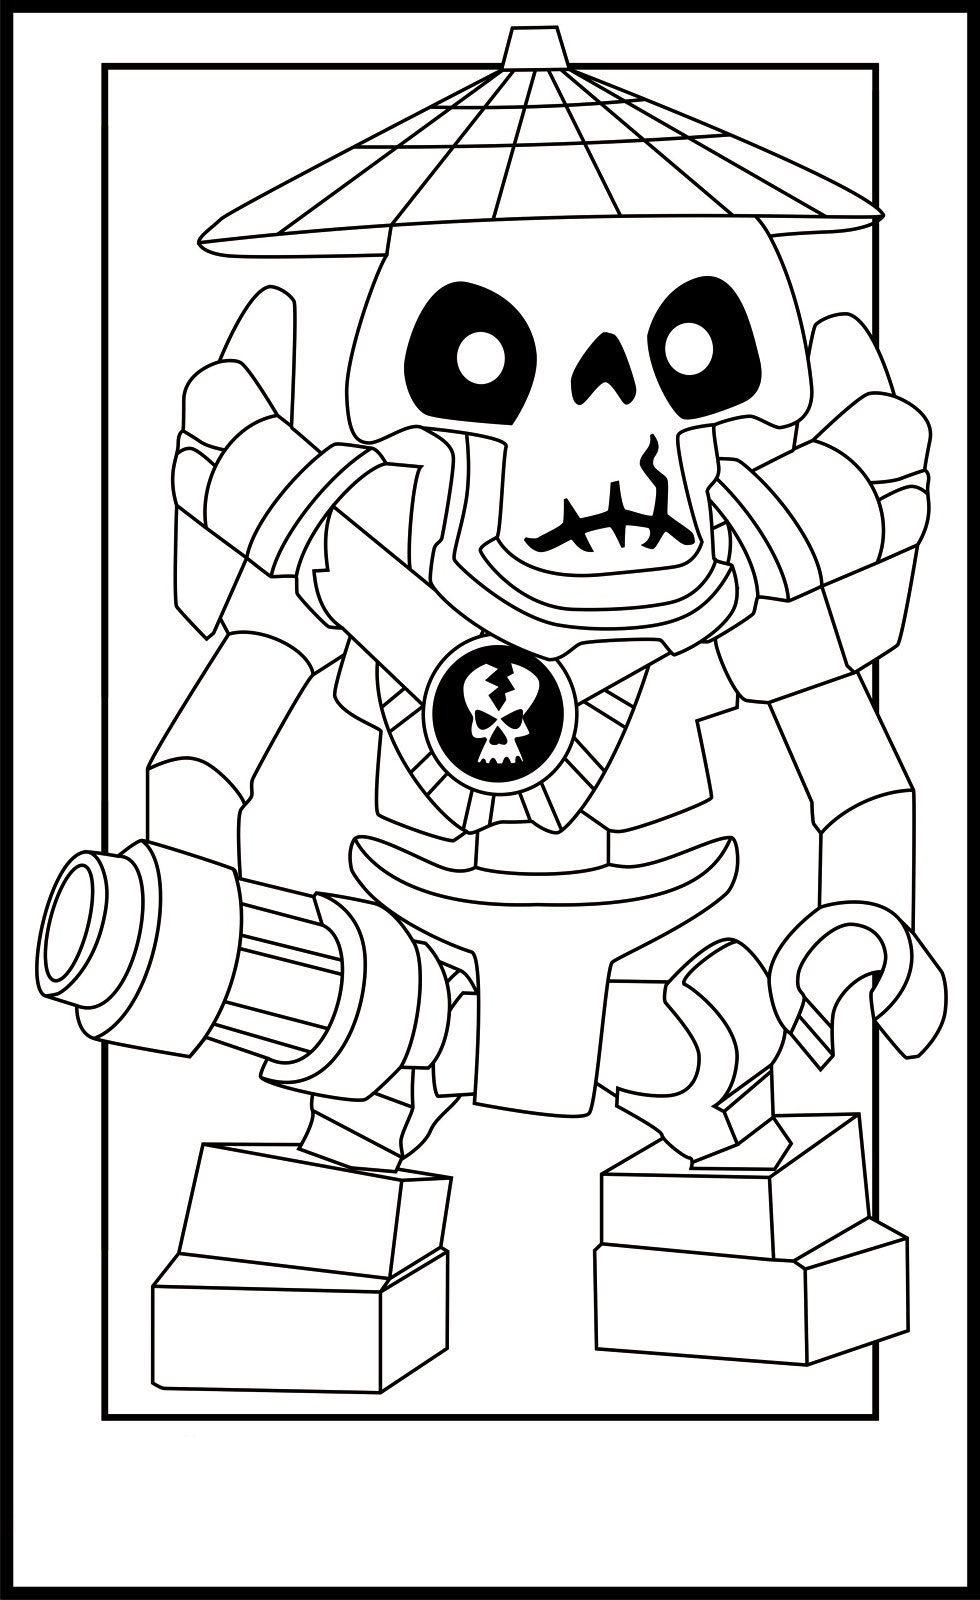 Cole ninjago coloring games online for kids - Ninjago Coloring Pages For Kids Printable